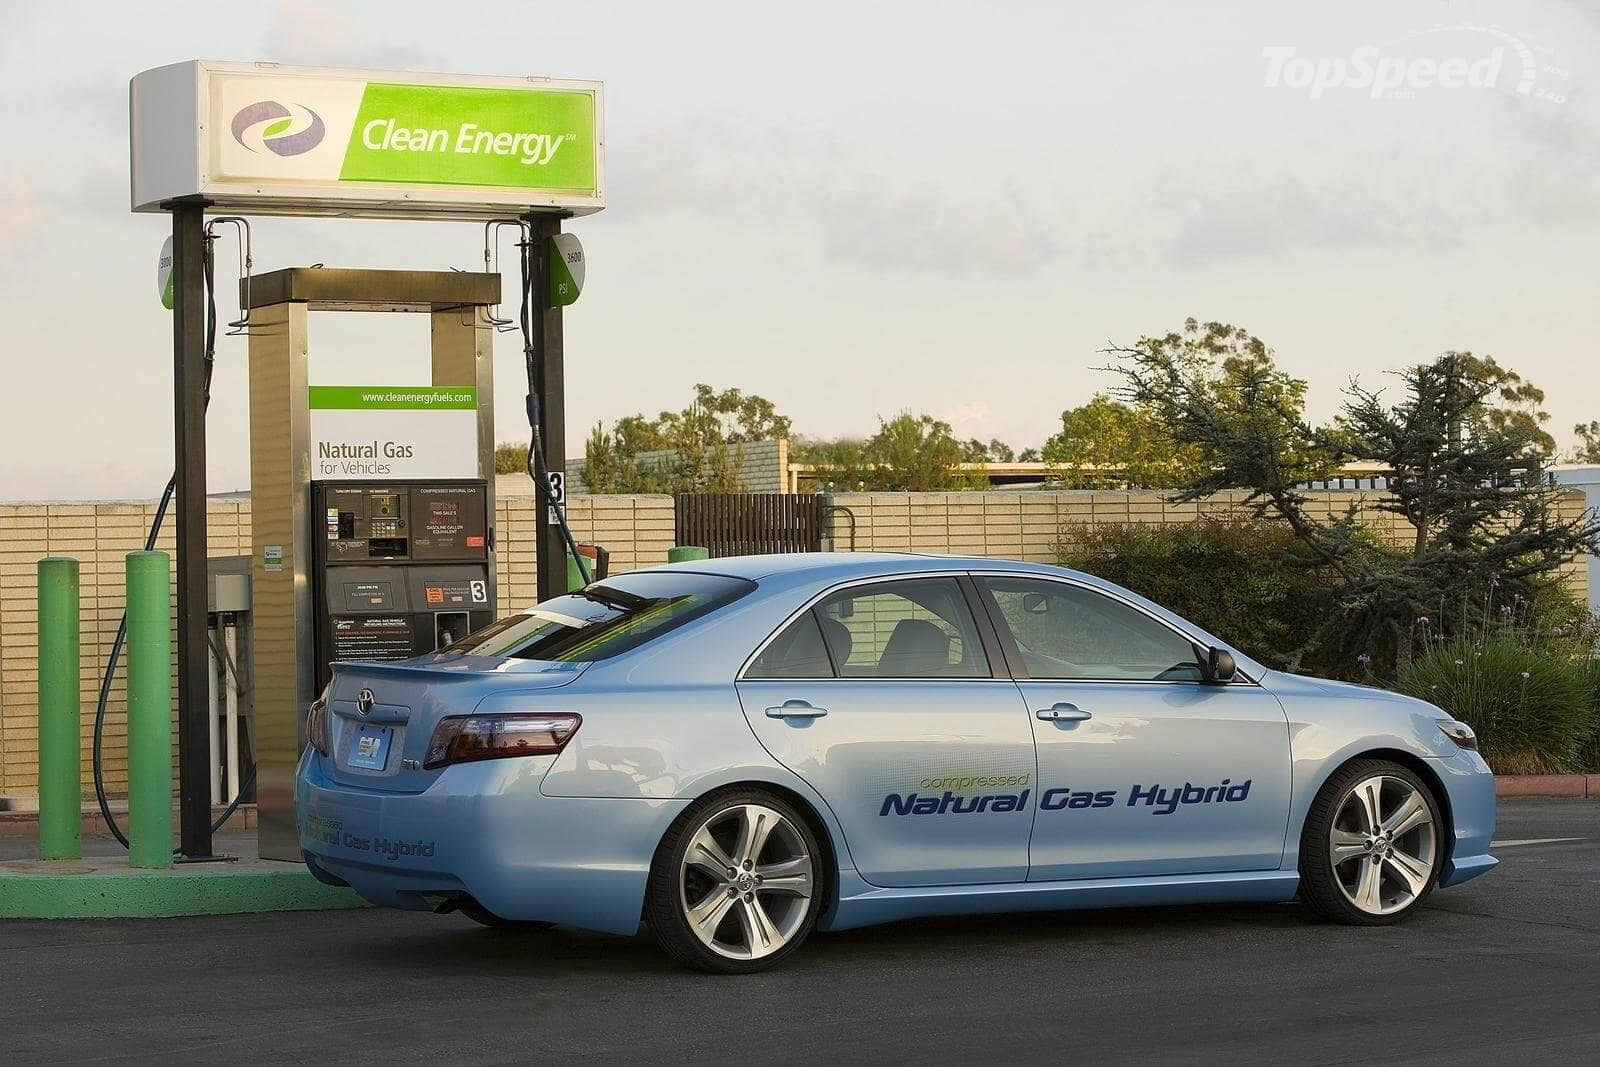 Compressed natural gas car